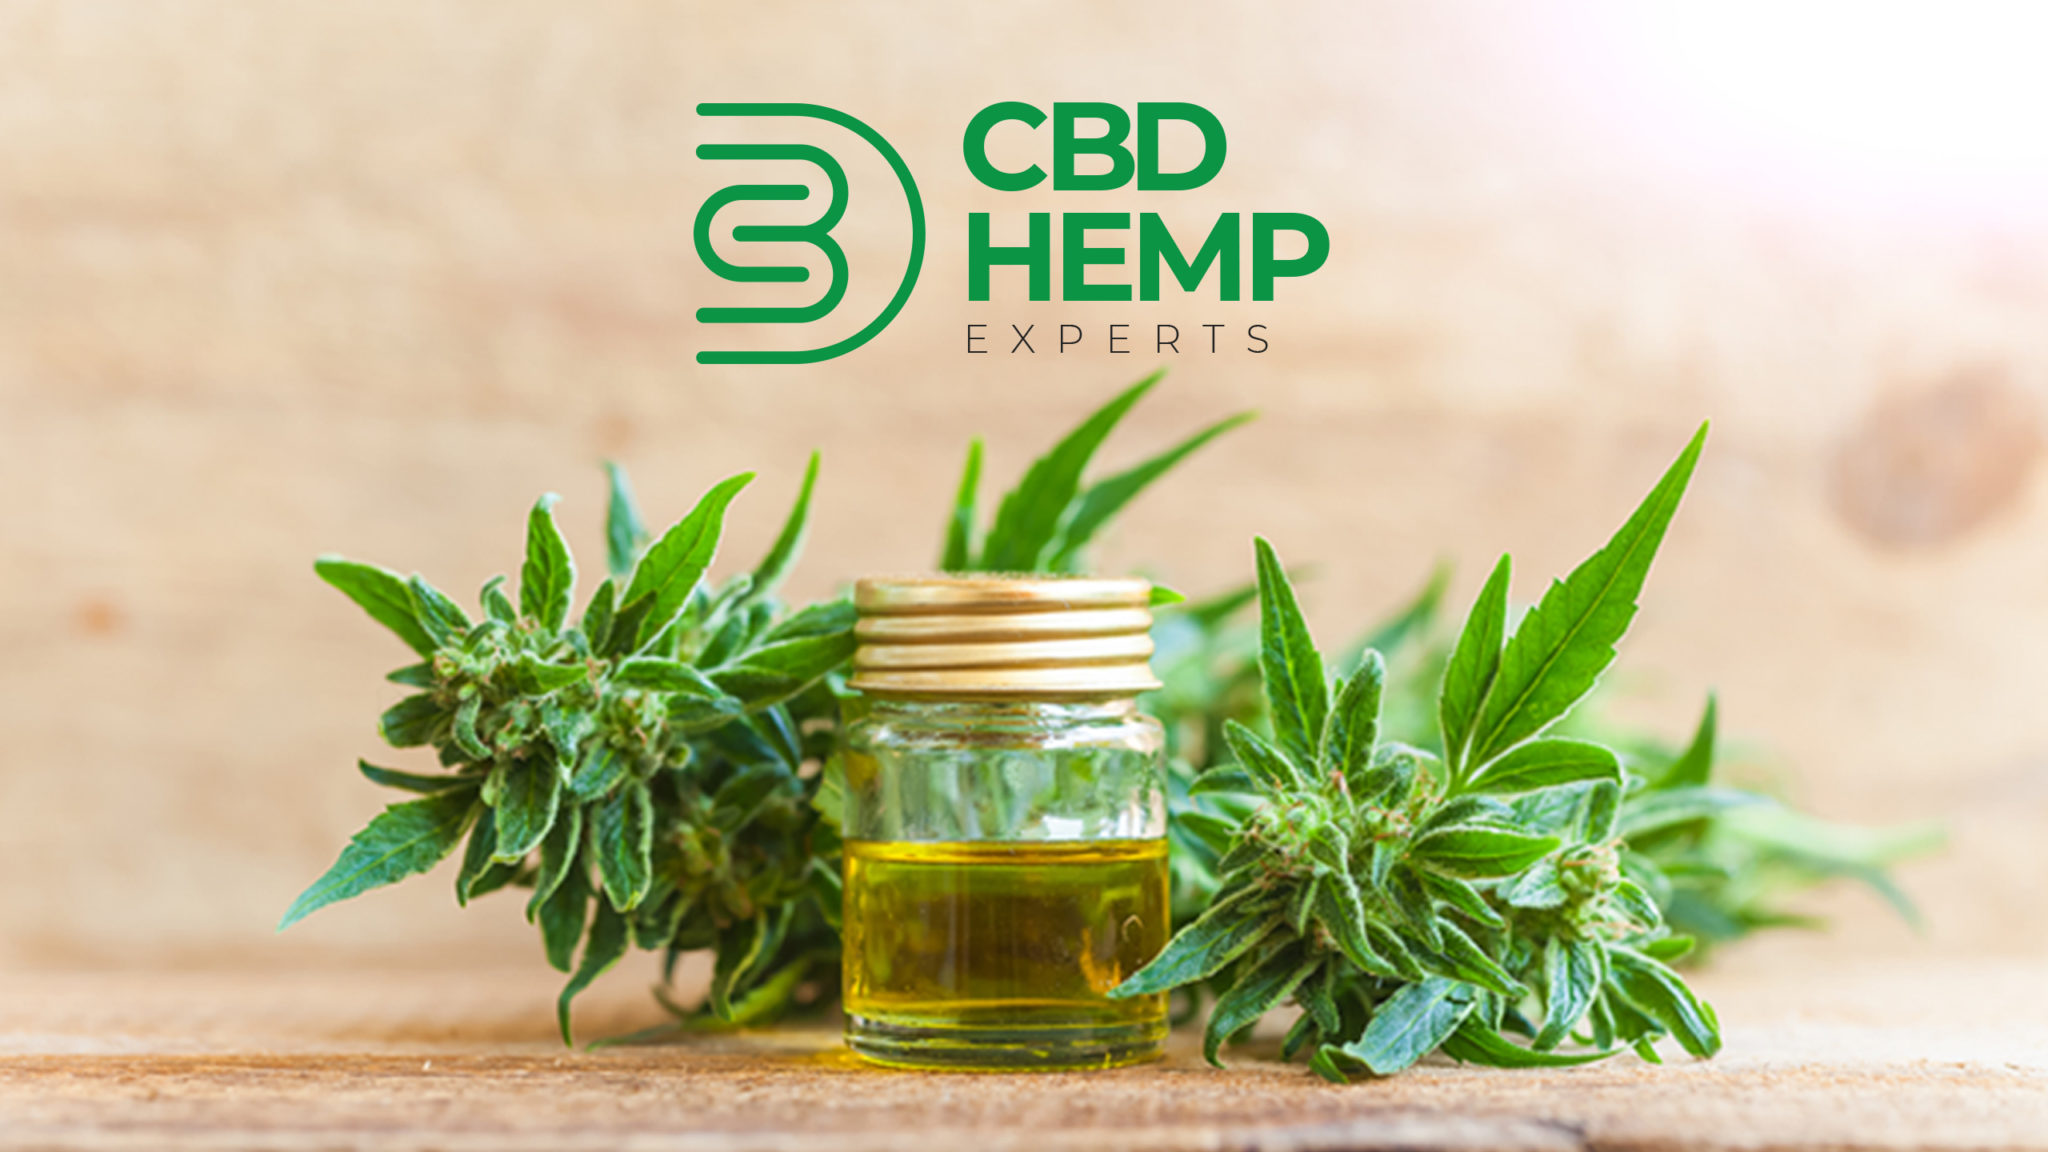 CBD Hemp Experts News